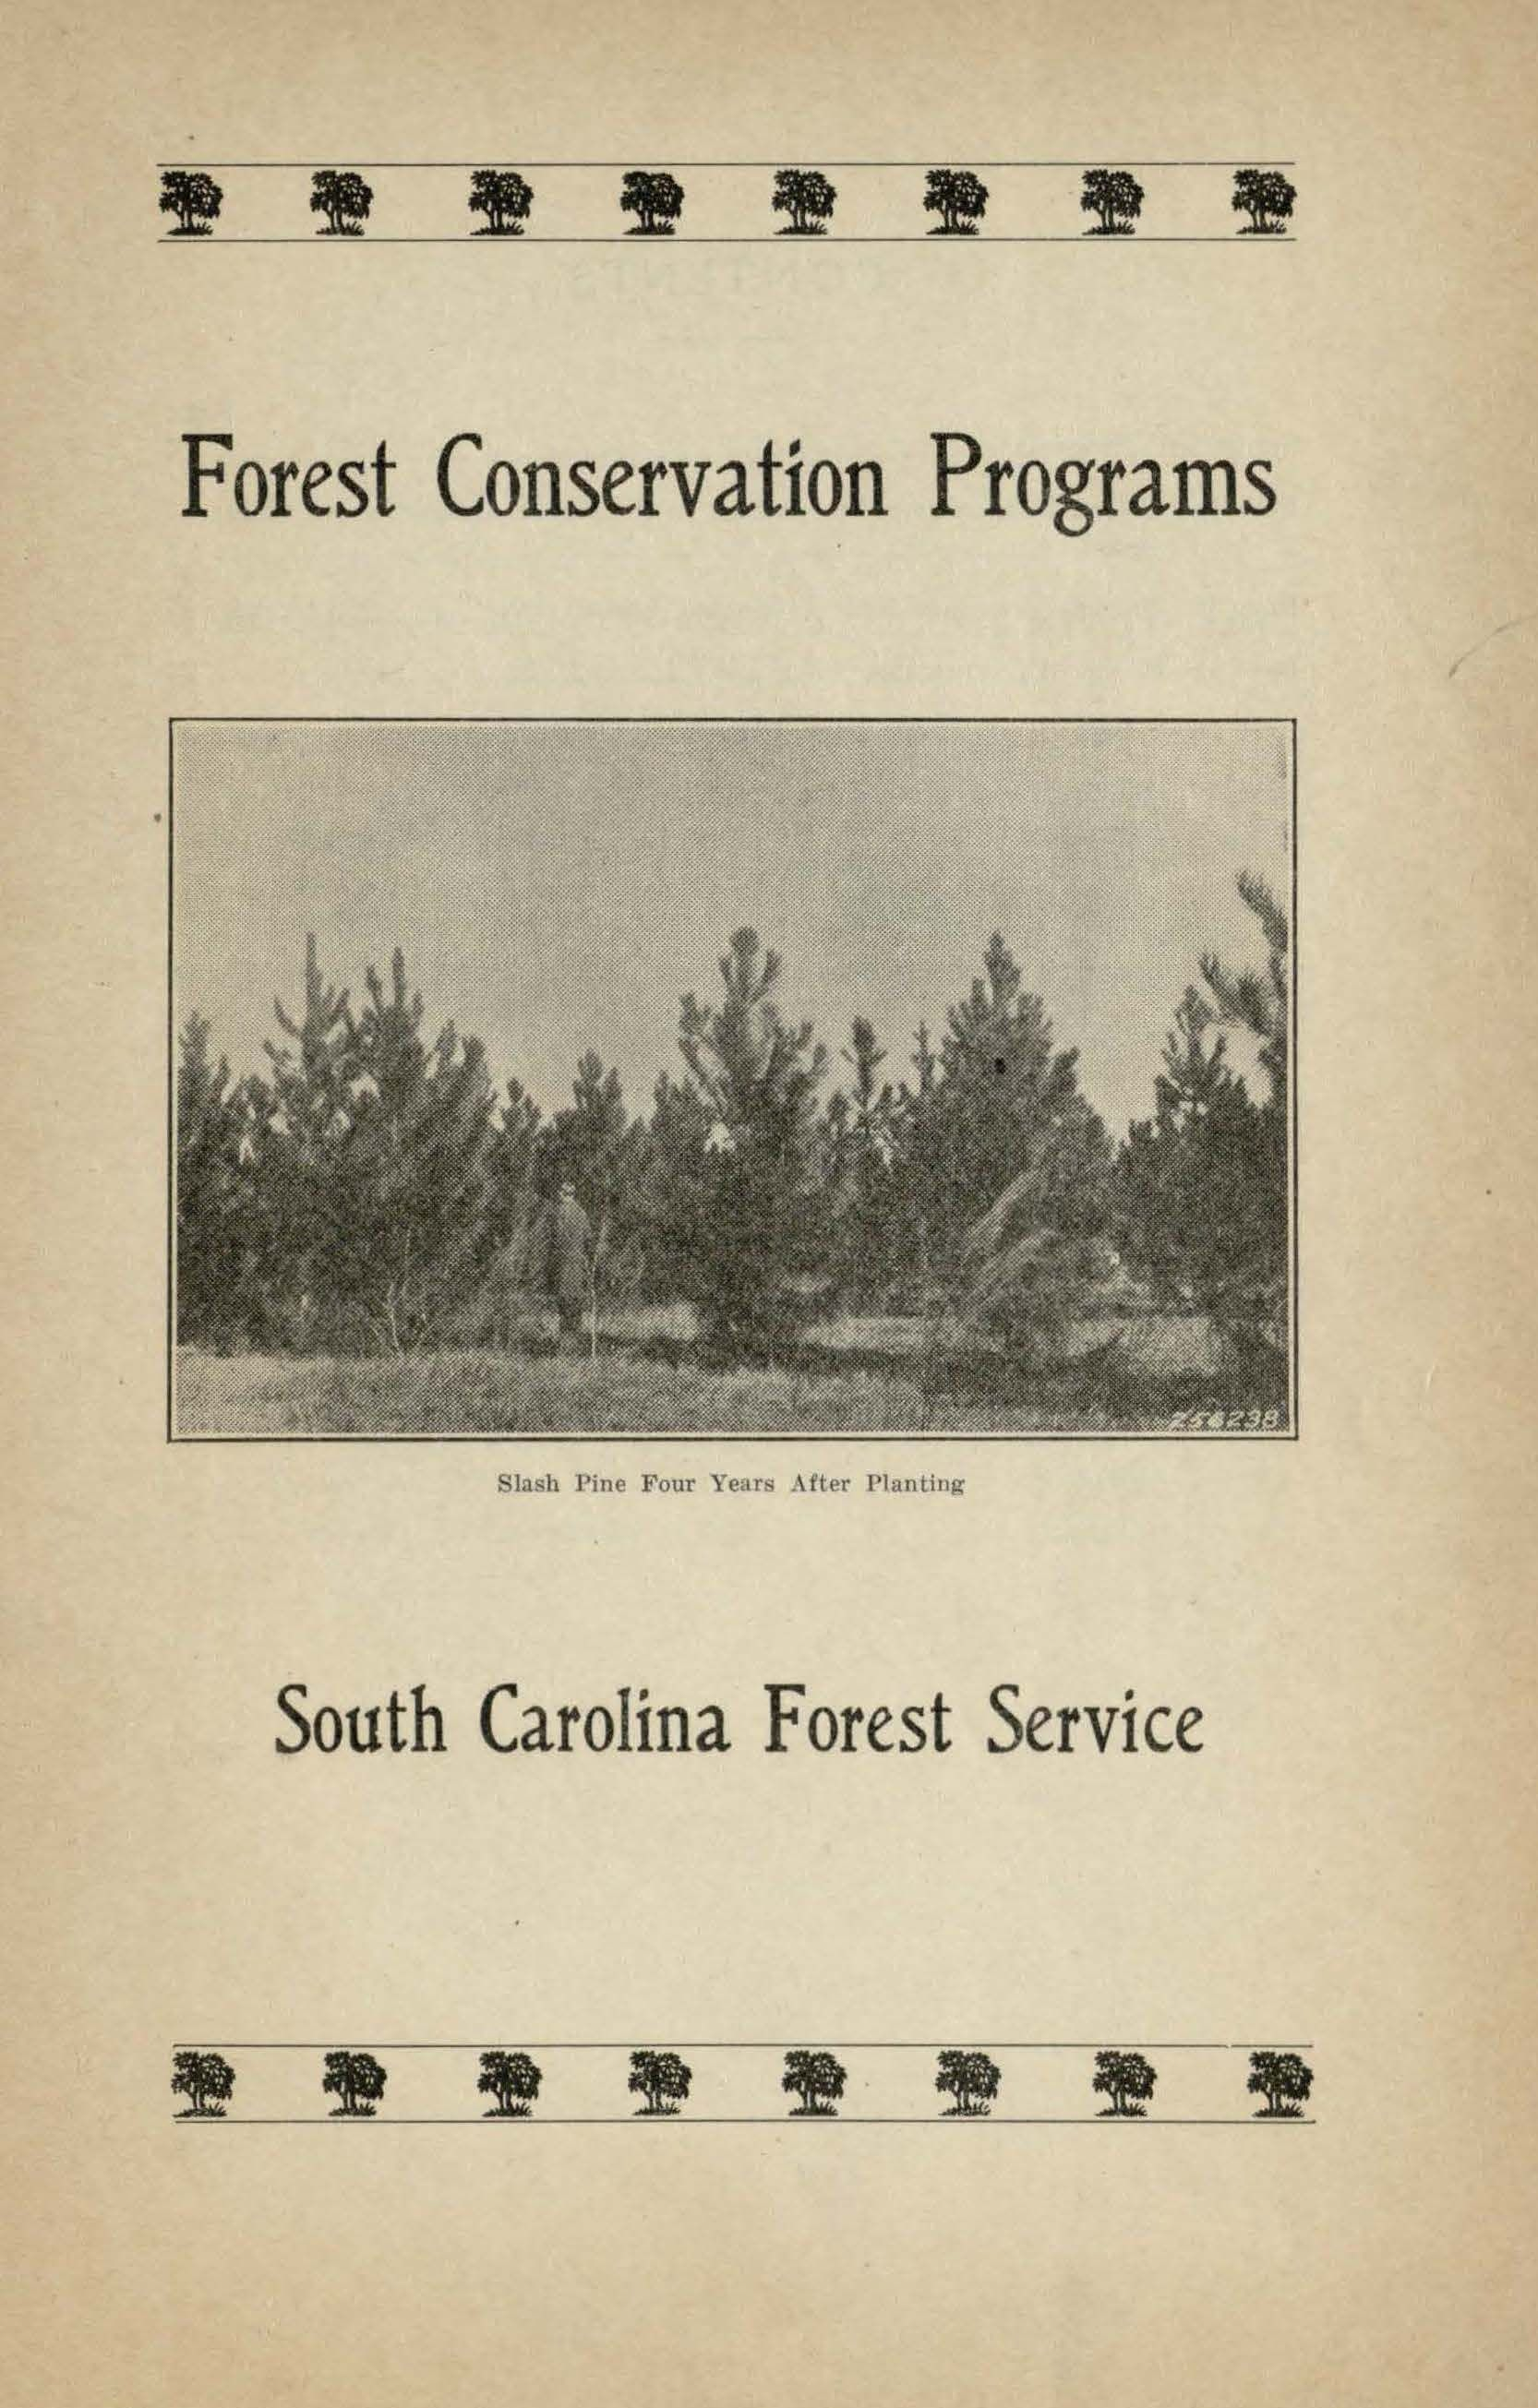 Forest conservation programs for schools, service clubs, women's clubs and  other civic organizations. Lenhart and South Carolina Forestry Commission.